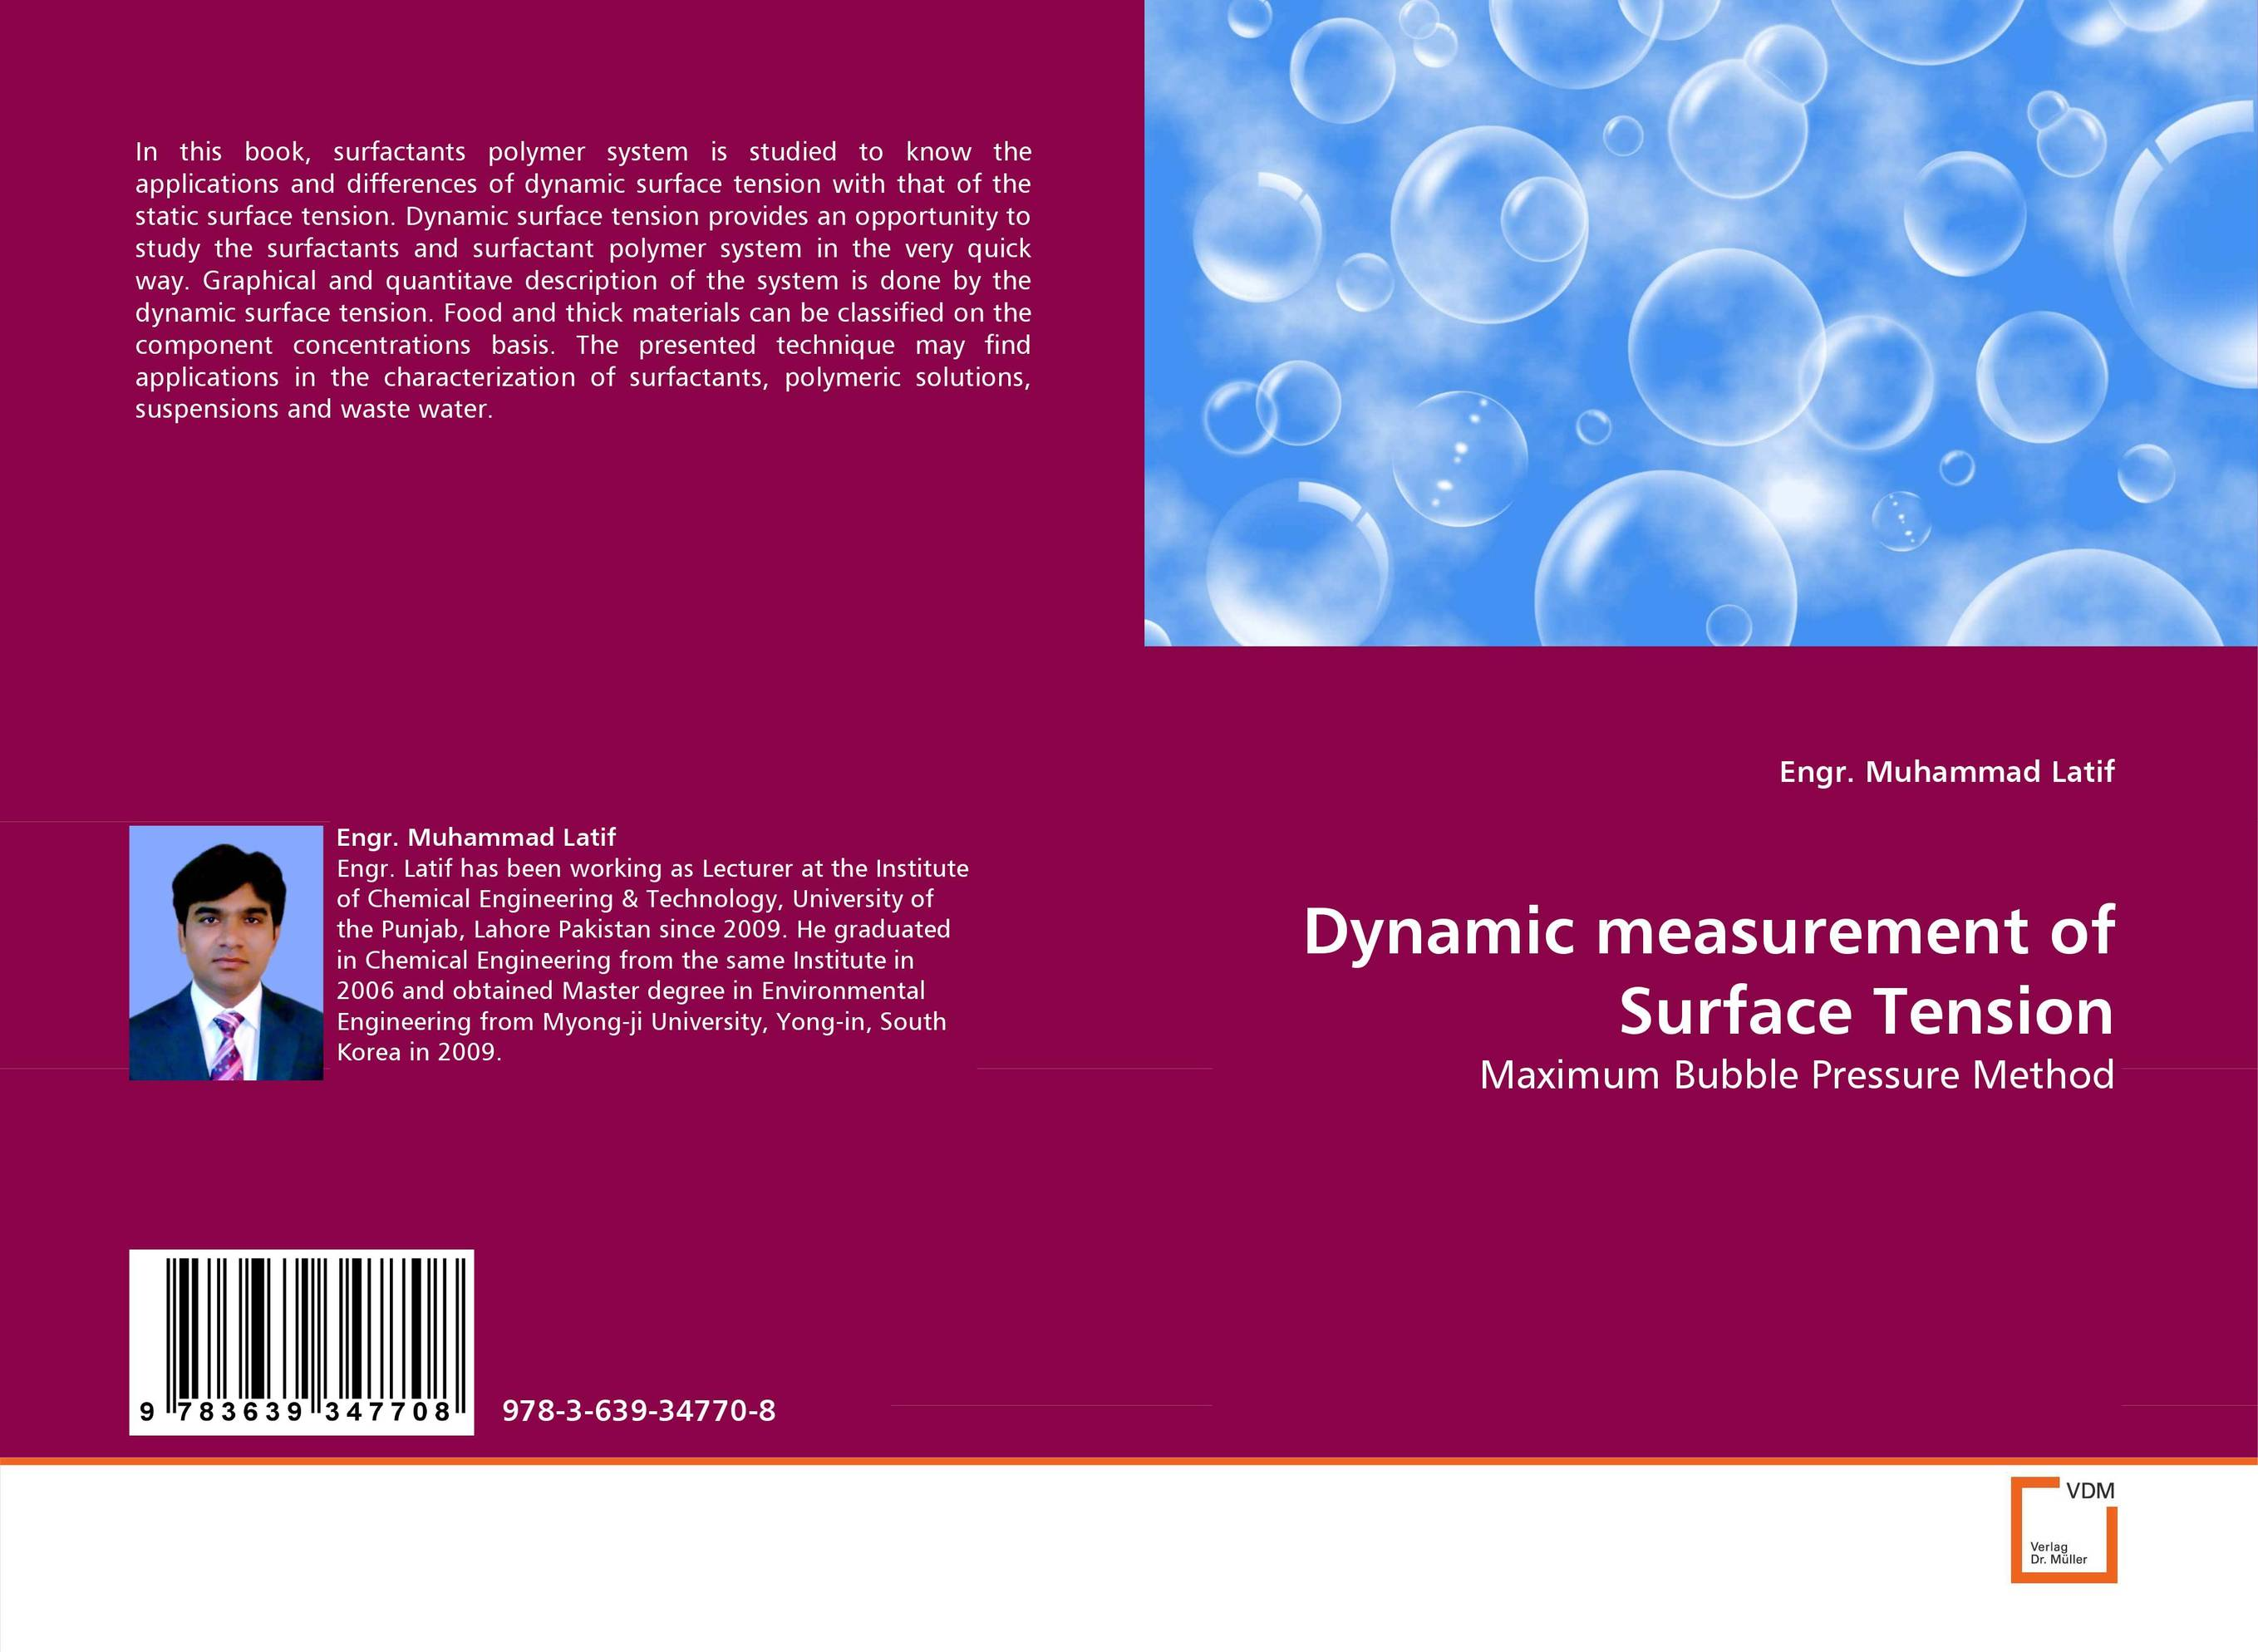 Dynamic measurement of Surface Tension yg902c6 to 220f